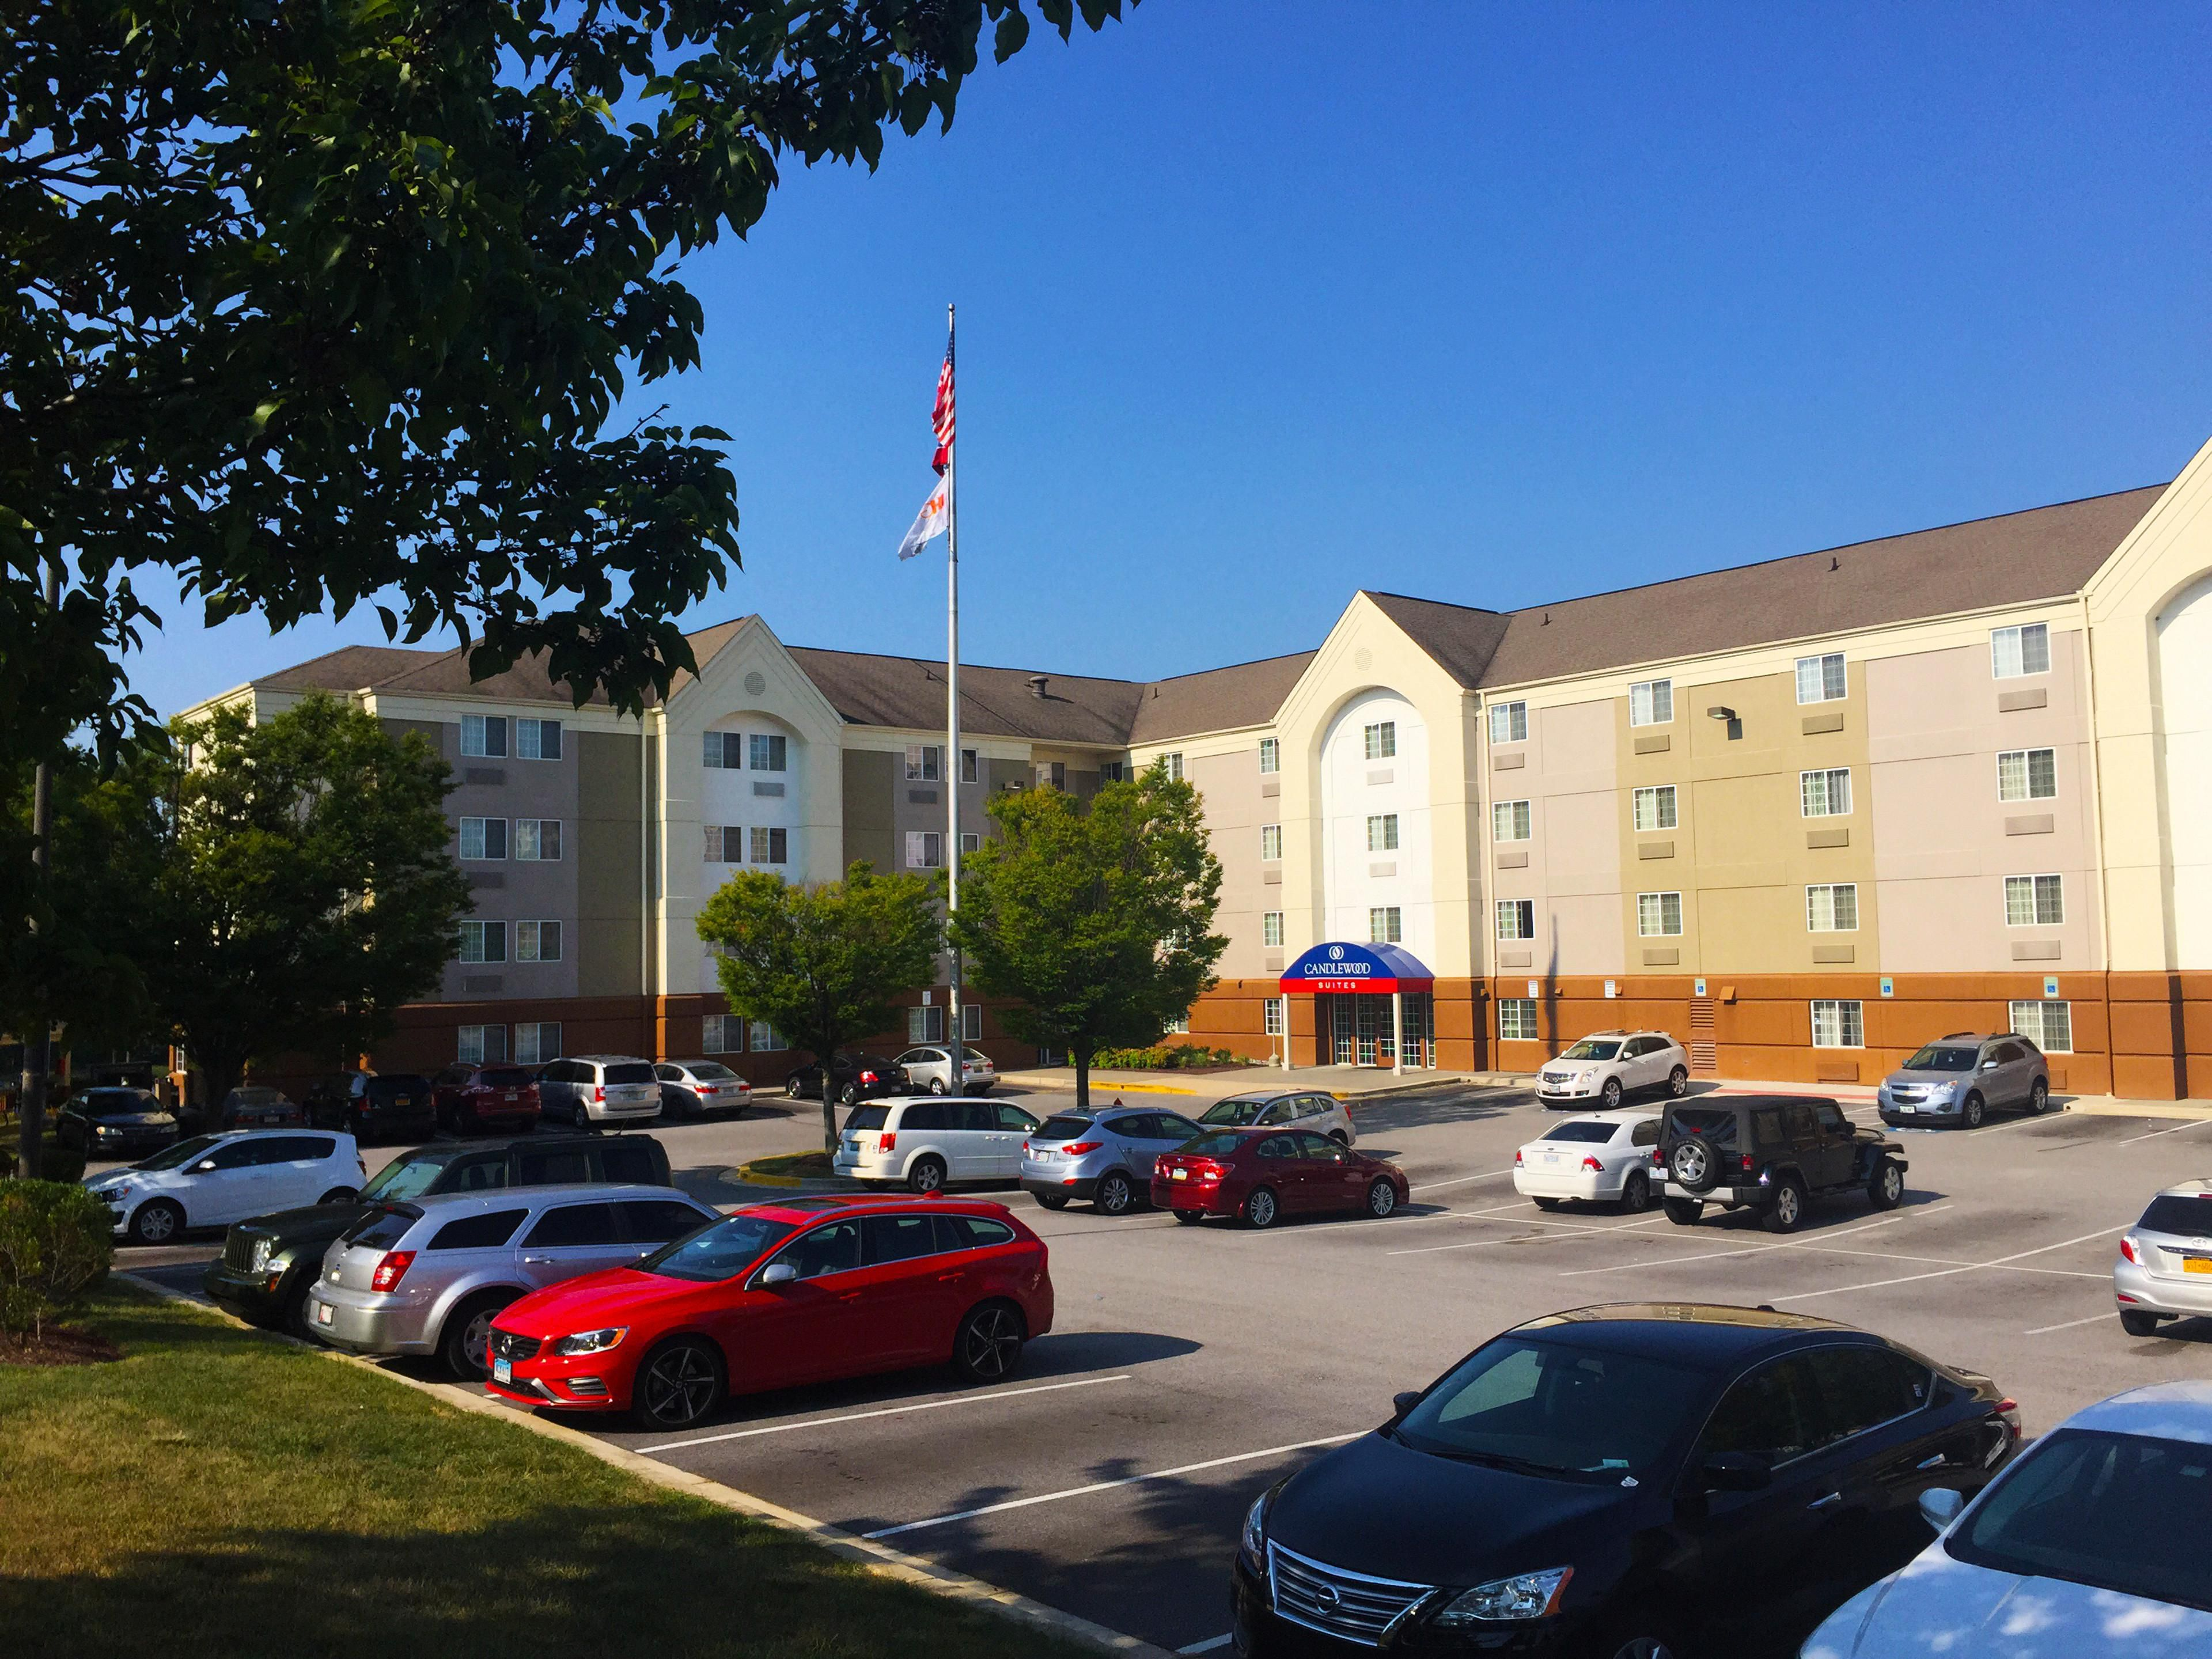 Hotels At Bwi Airport Maryland